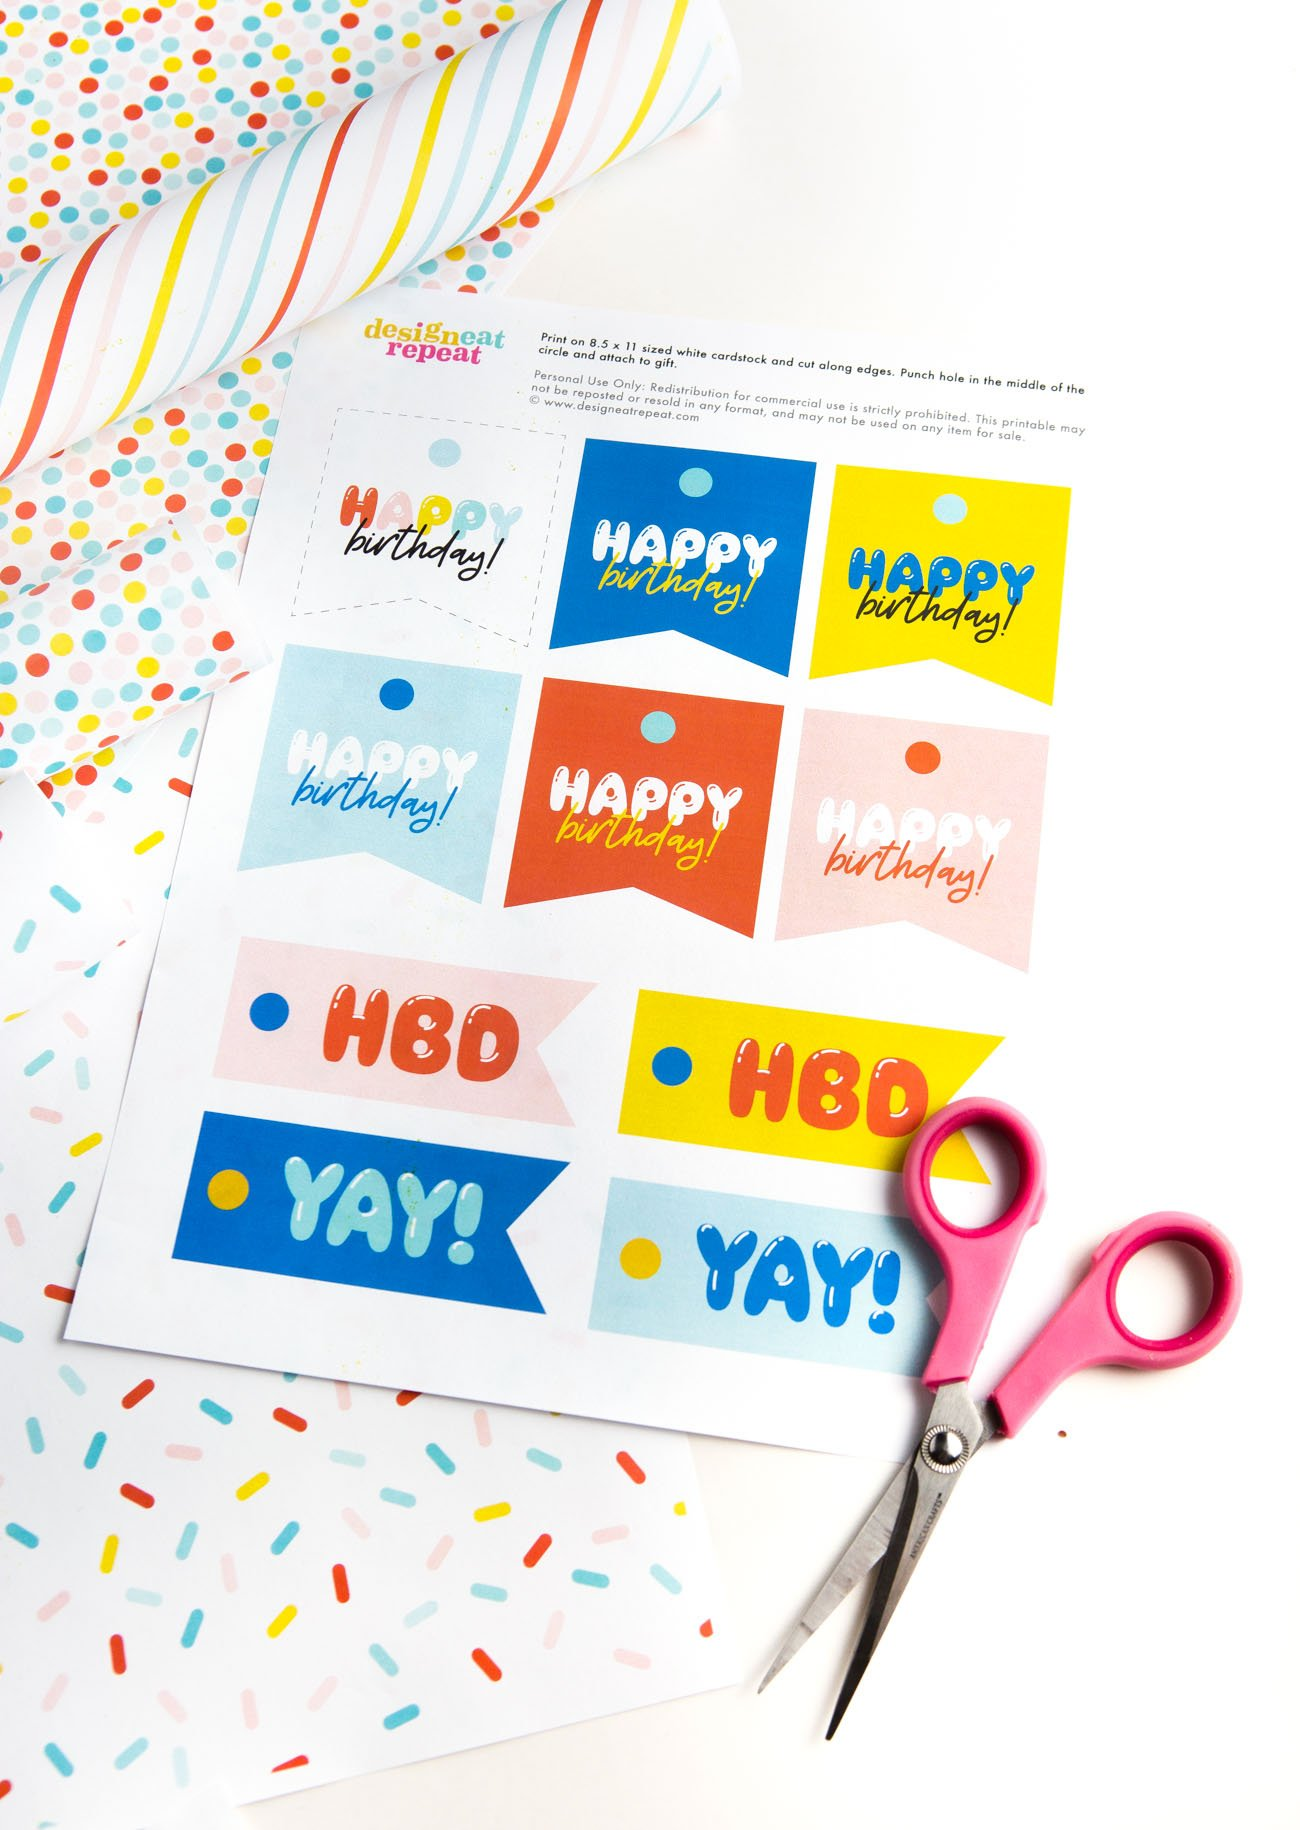 Free Printable Happy Birthday Tags Design Eat Repeat